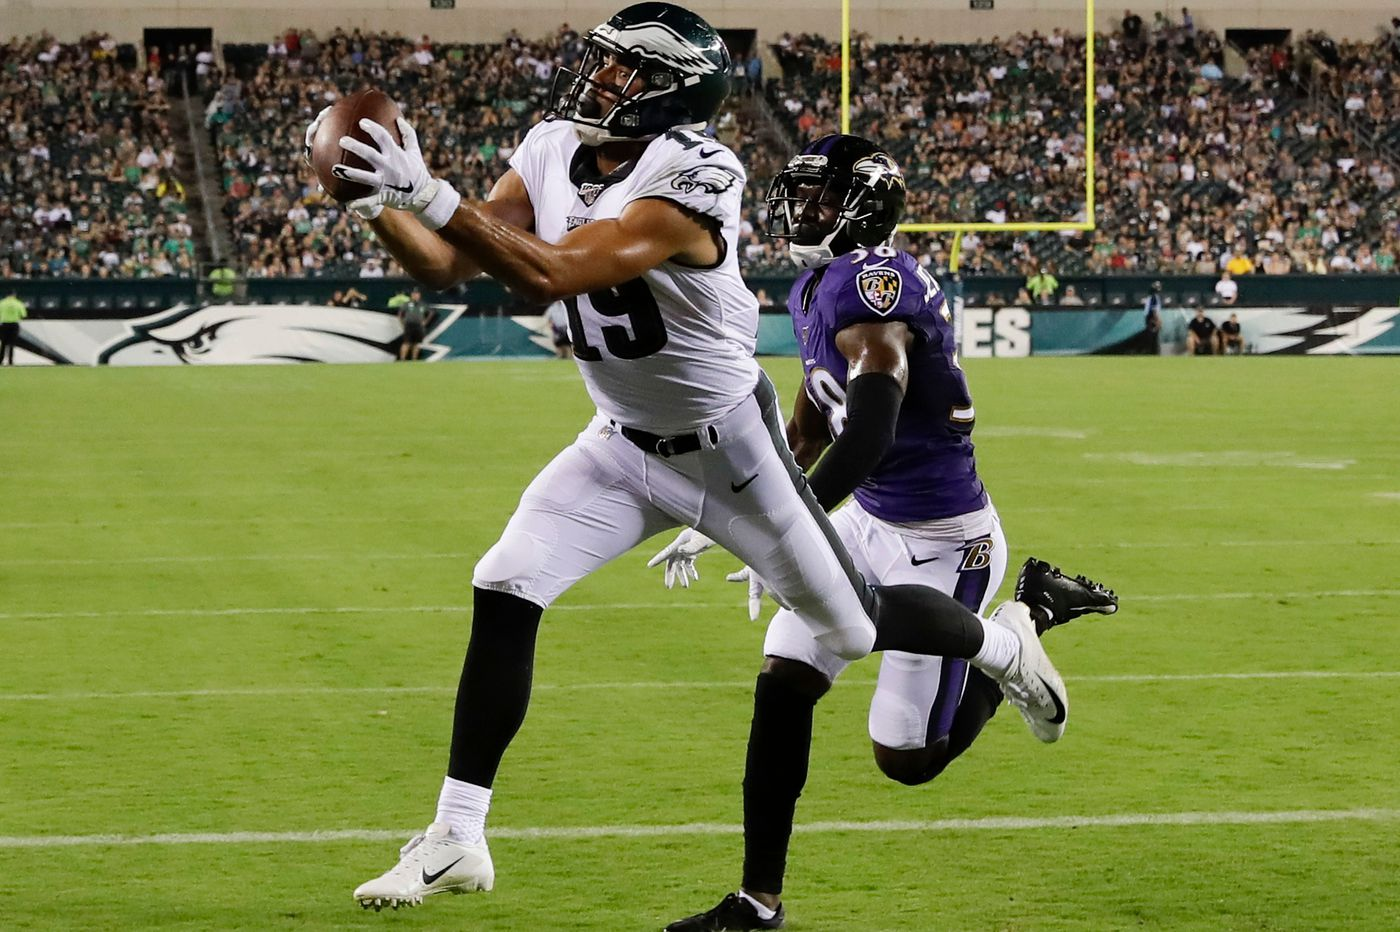 Rookie wide receiver J.J. Arcega-Whiteside could provide a big boost to Eagles' red-zone offense